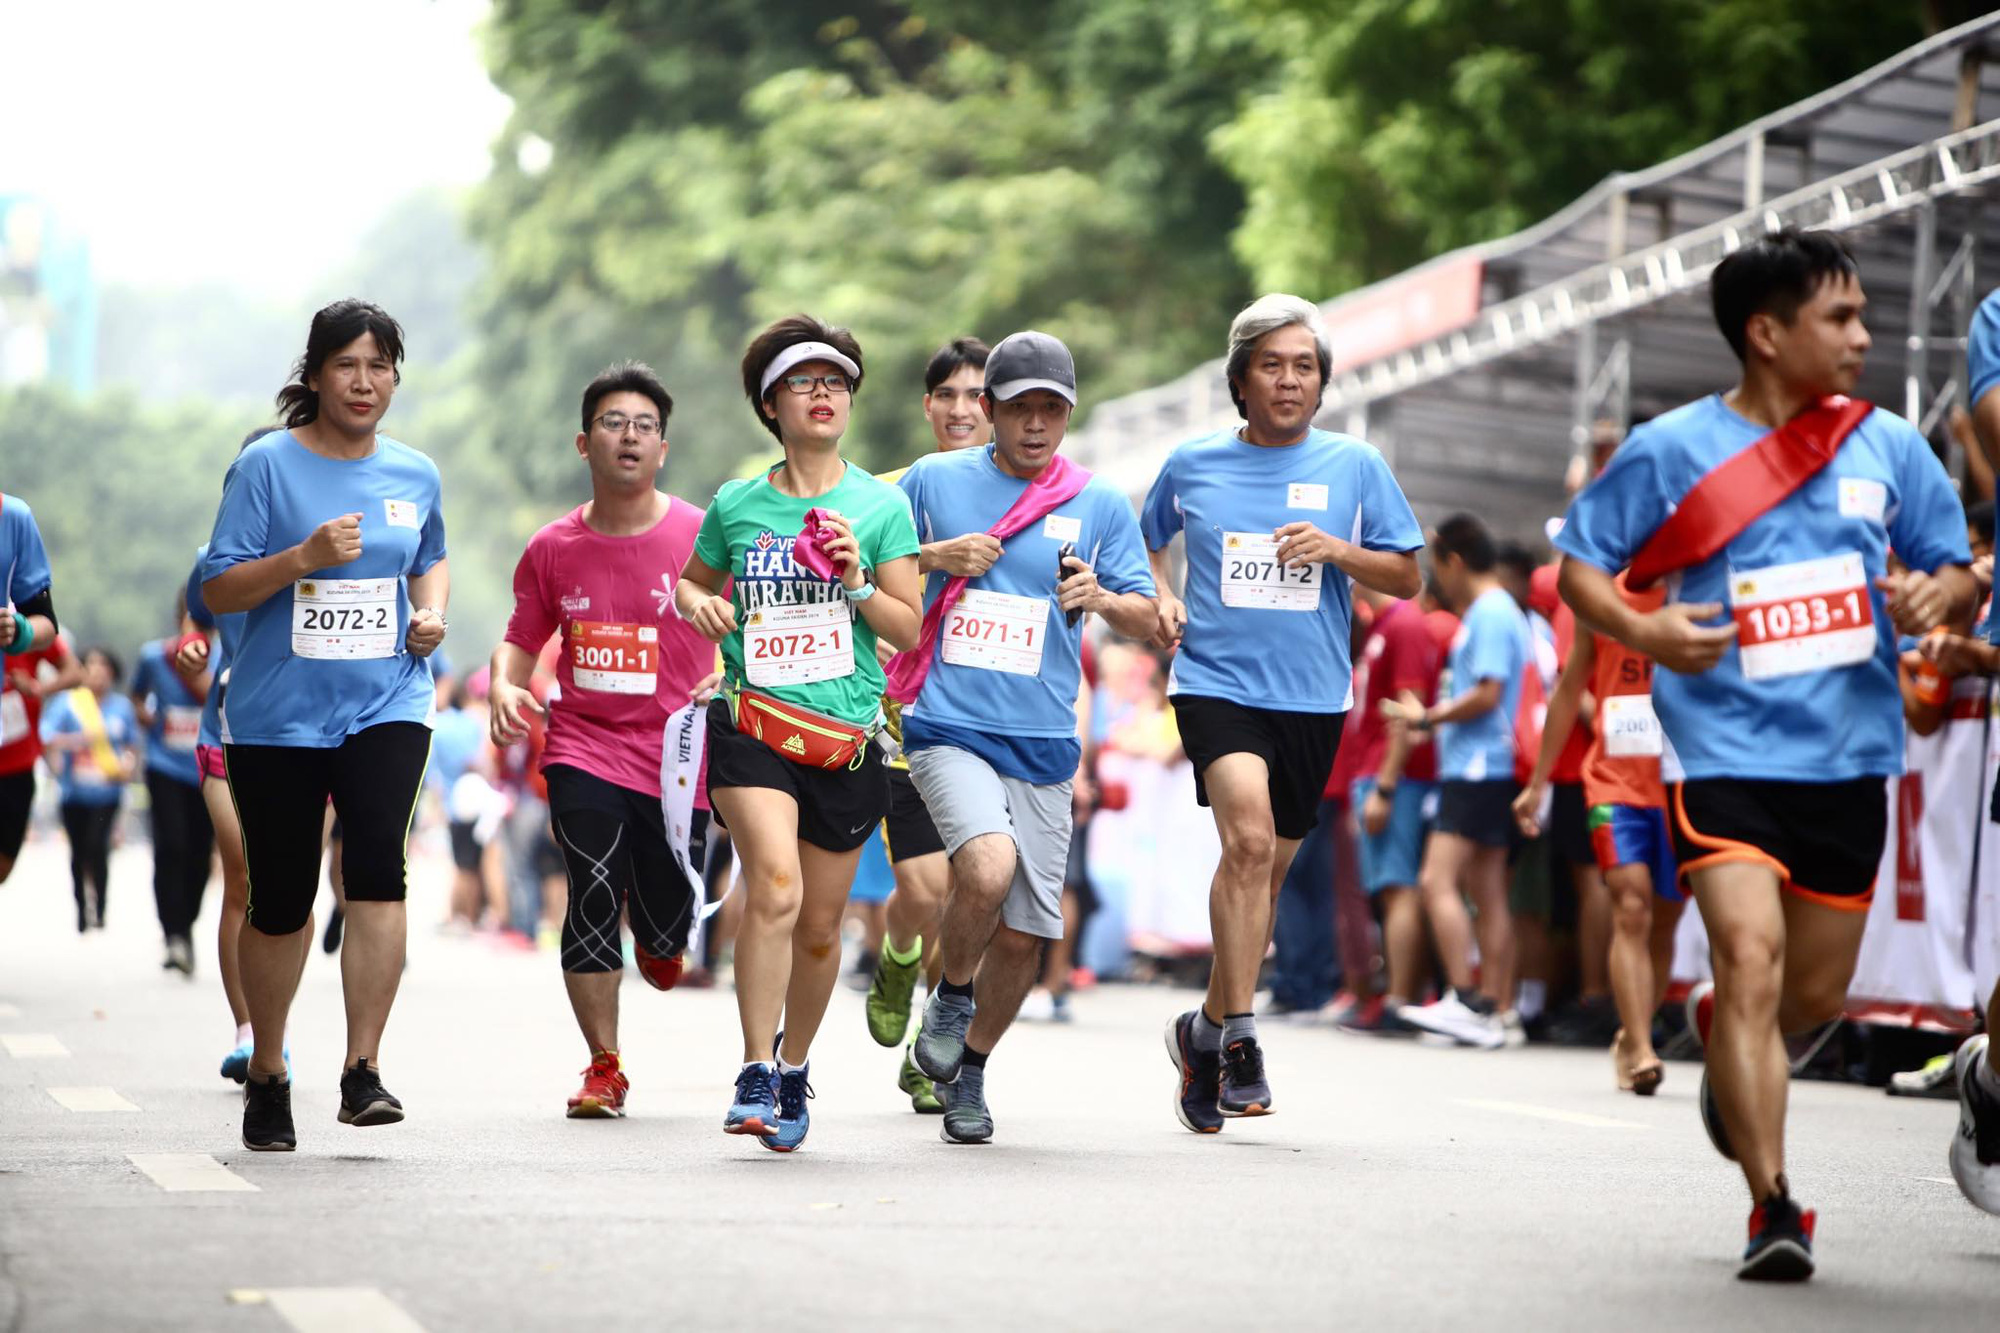 Runners are pictured during the relay race.